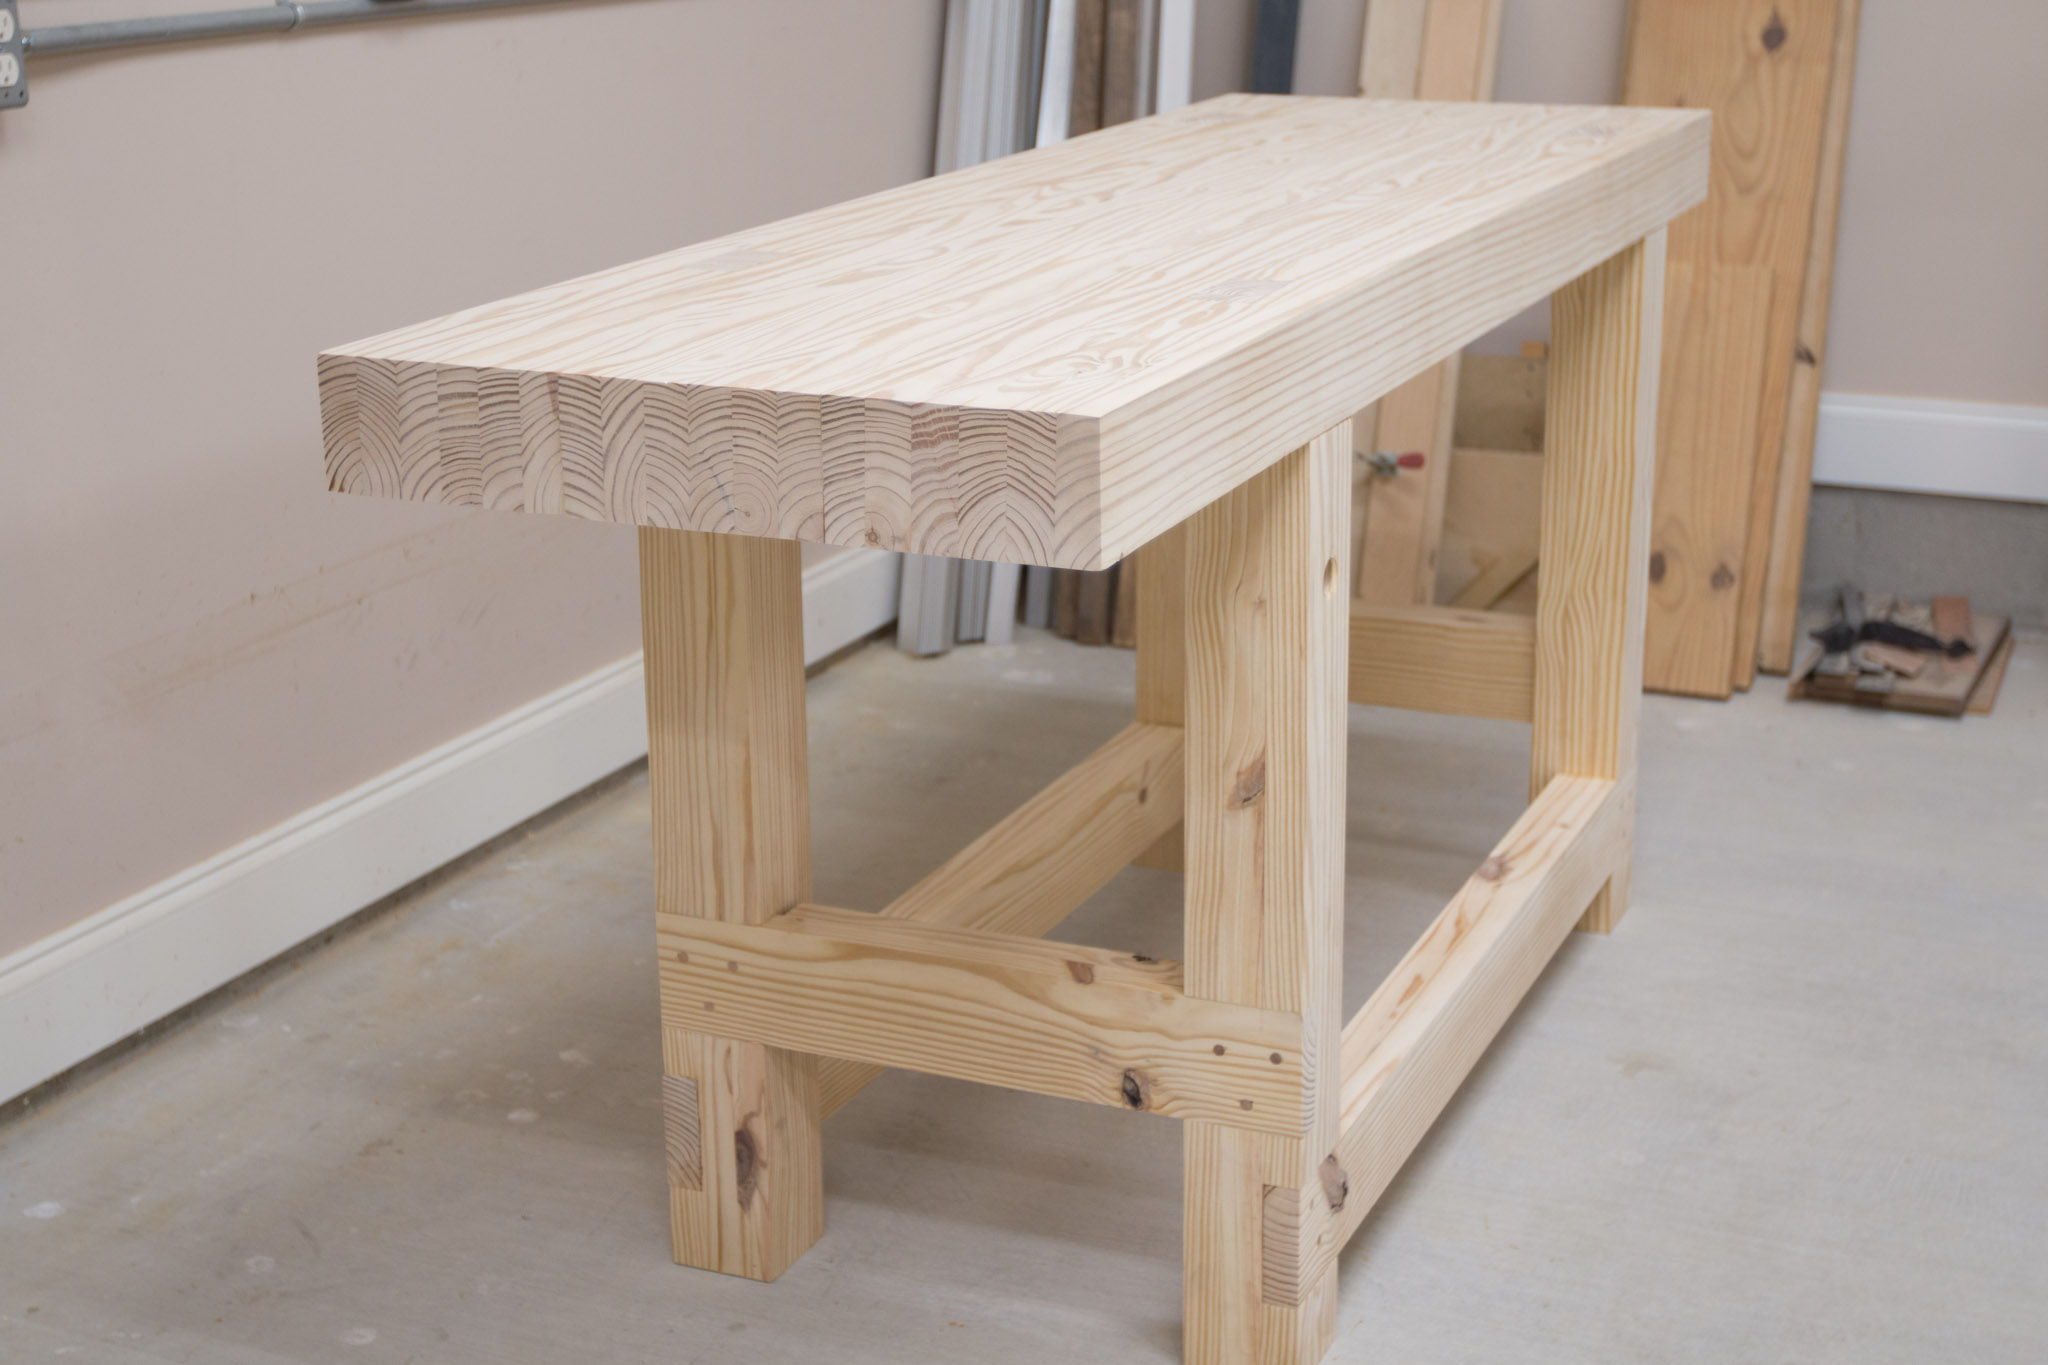 Building The Jay Bates Workbench Bruce A Ulrich